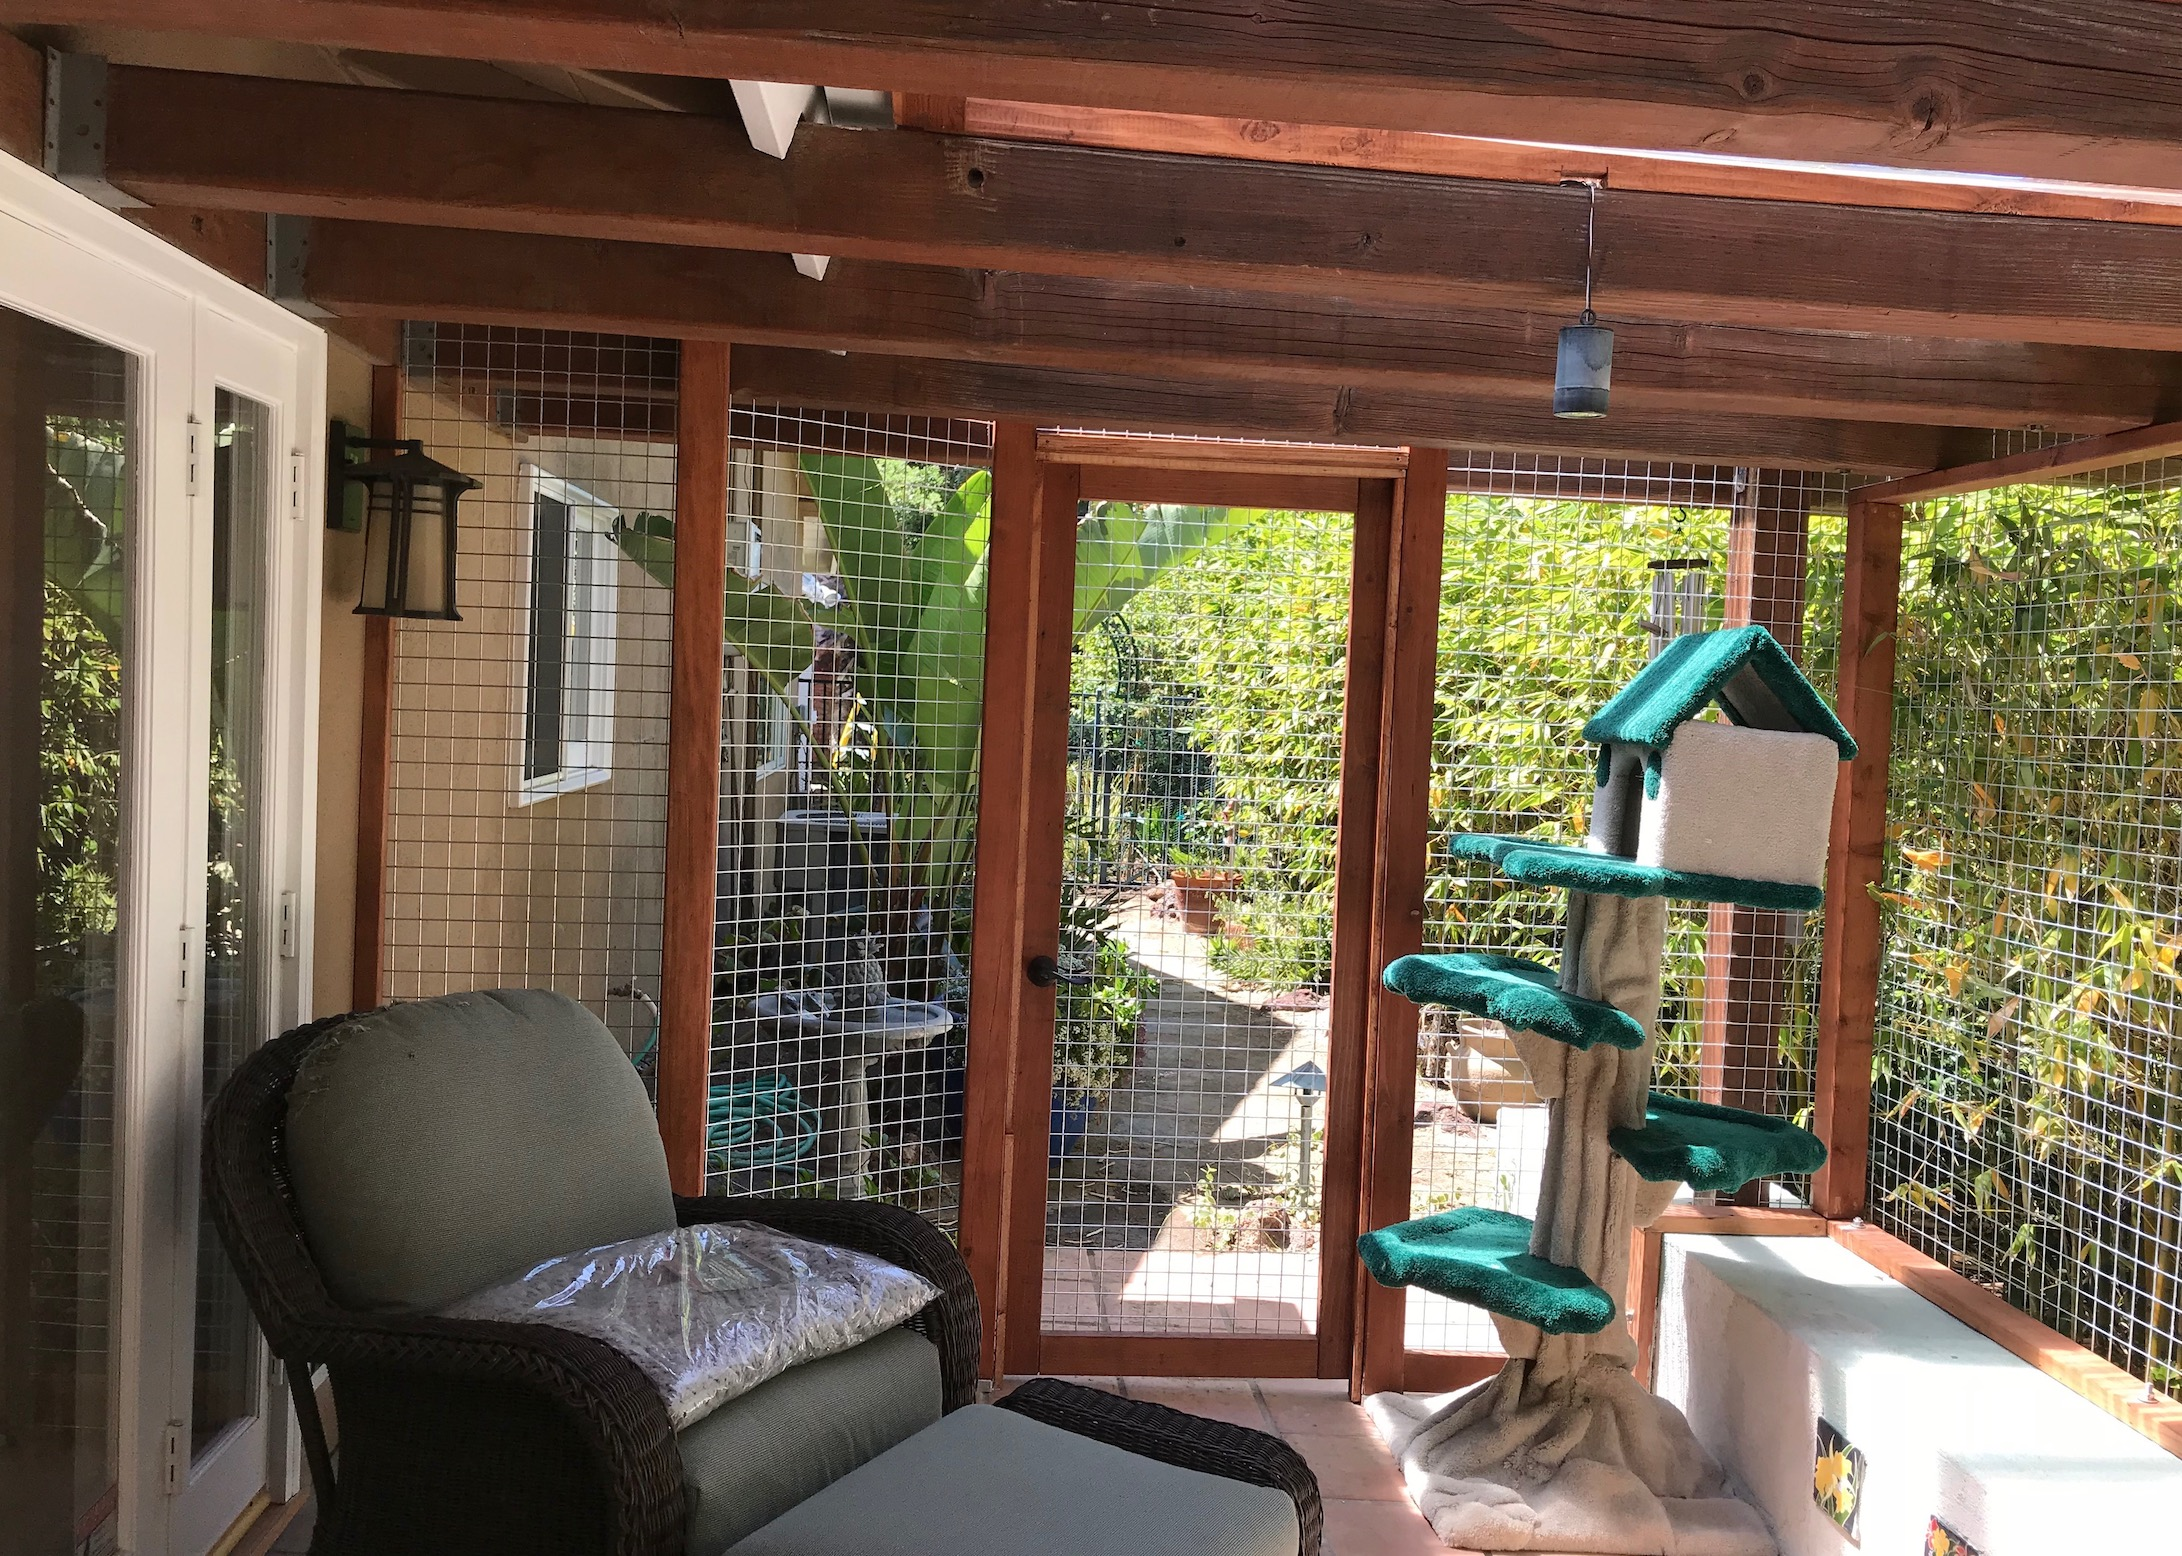 Encino Catio After Shot